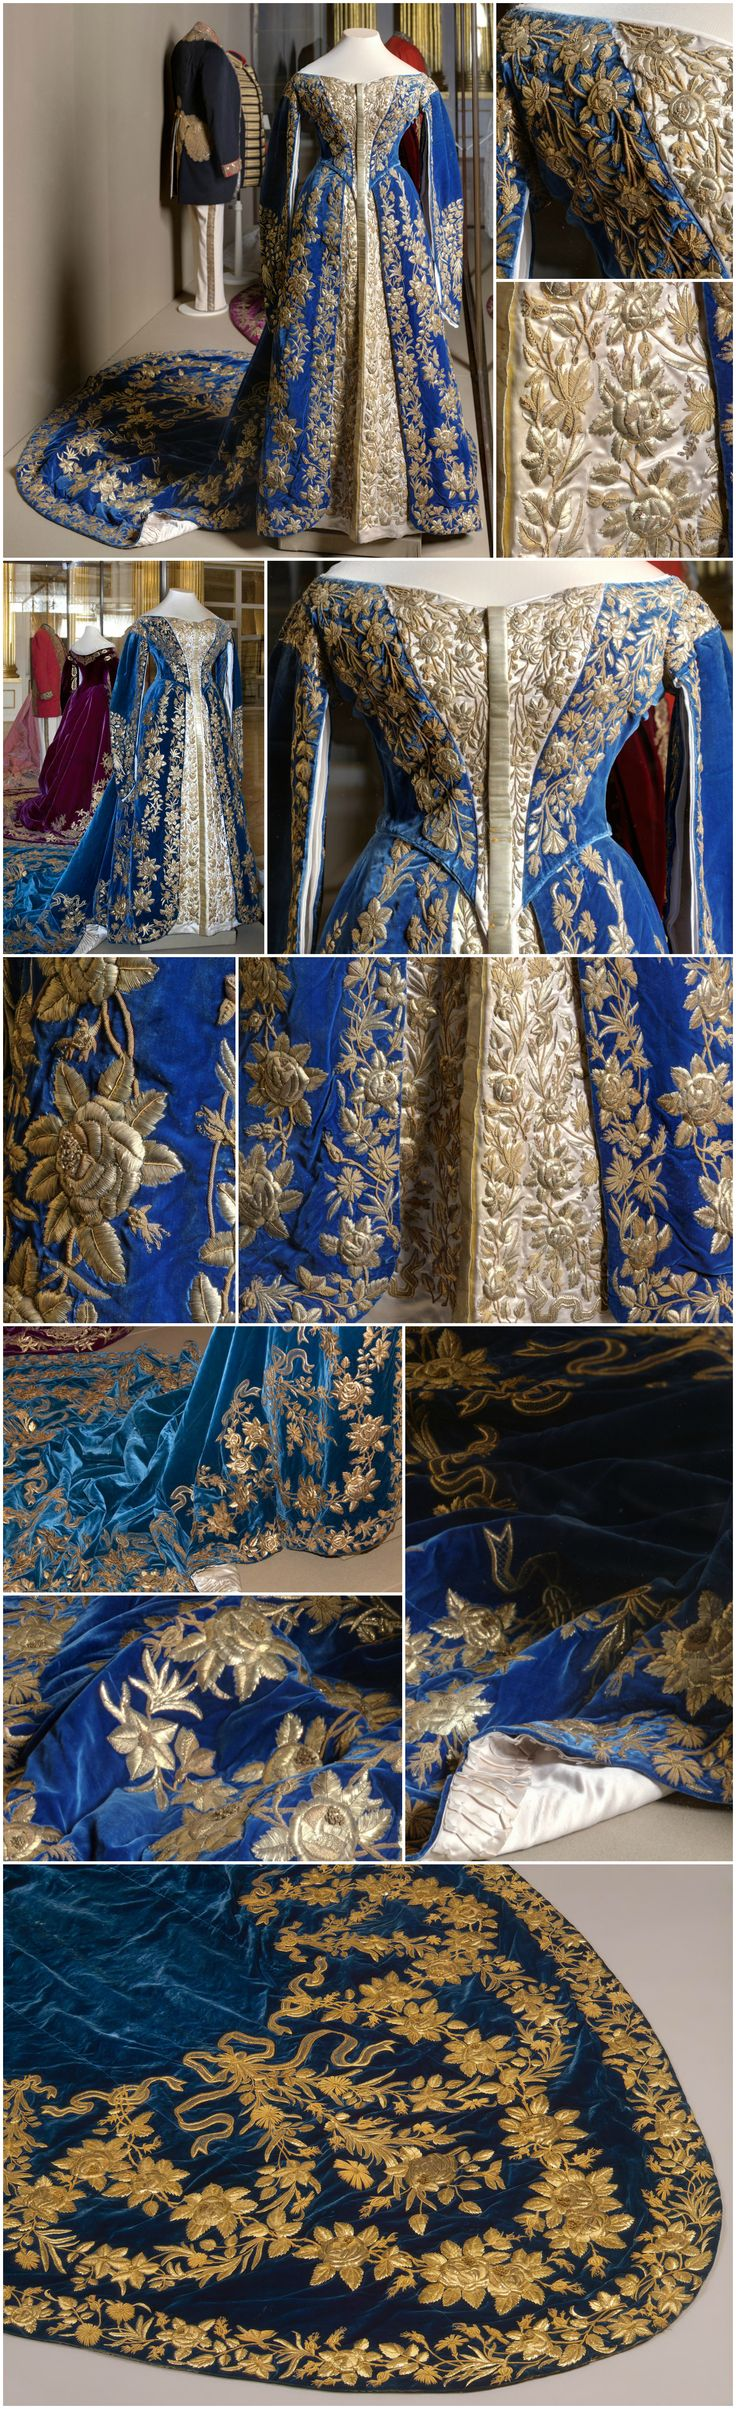 Ceremonial court dress belonging to Empress Alexandra Fyodorovna. Made by the workshop of O. Bulbenkova (?), St. Petersburg, Russia. Late 19th to early 20th centuries. Velvet, satin and gilded metal thread. State Hermitage Museum (links: https://www.hermitagemuseum.org/wps/portal/hermitage/digital-collection/08.+Applied+Arts/1263422/?lng=en, http://www.hermitageline.ru/ru/blog/view/bal). Other photos are via Ghosts of Imperial Russia's Tumblr. CLICK FOR VERY LARGE, HI-RES IMAGES.